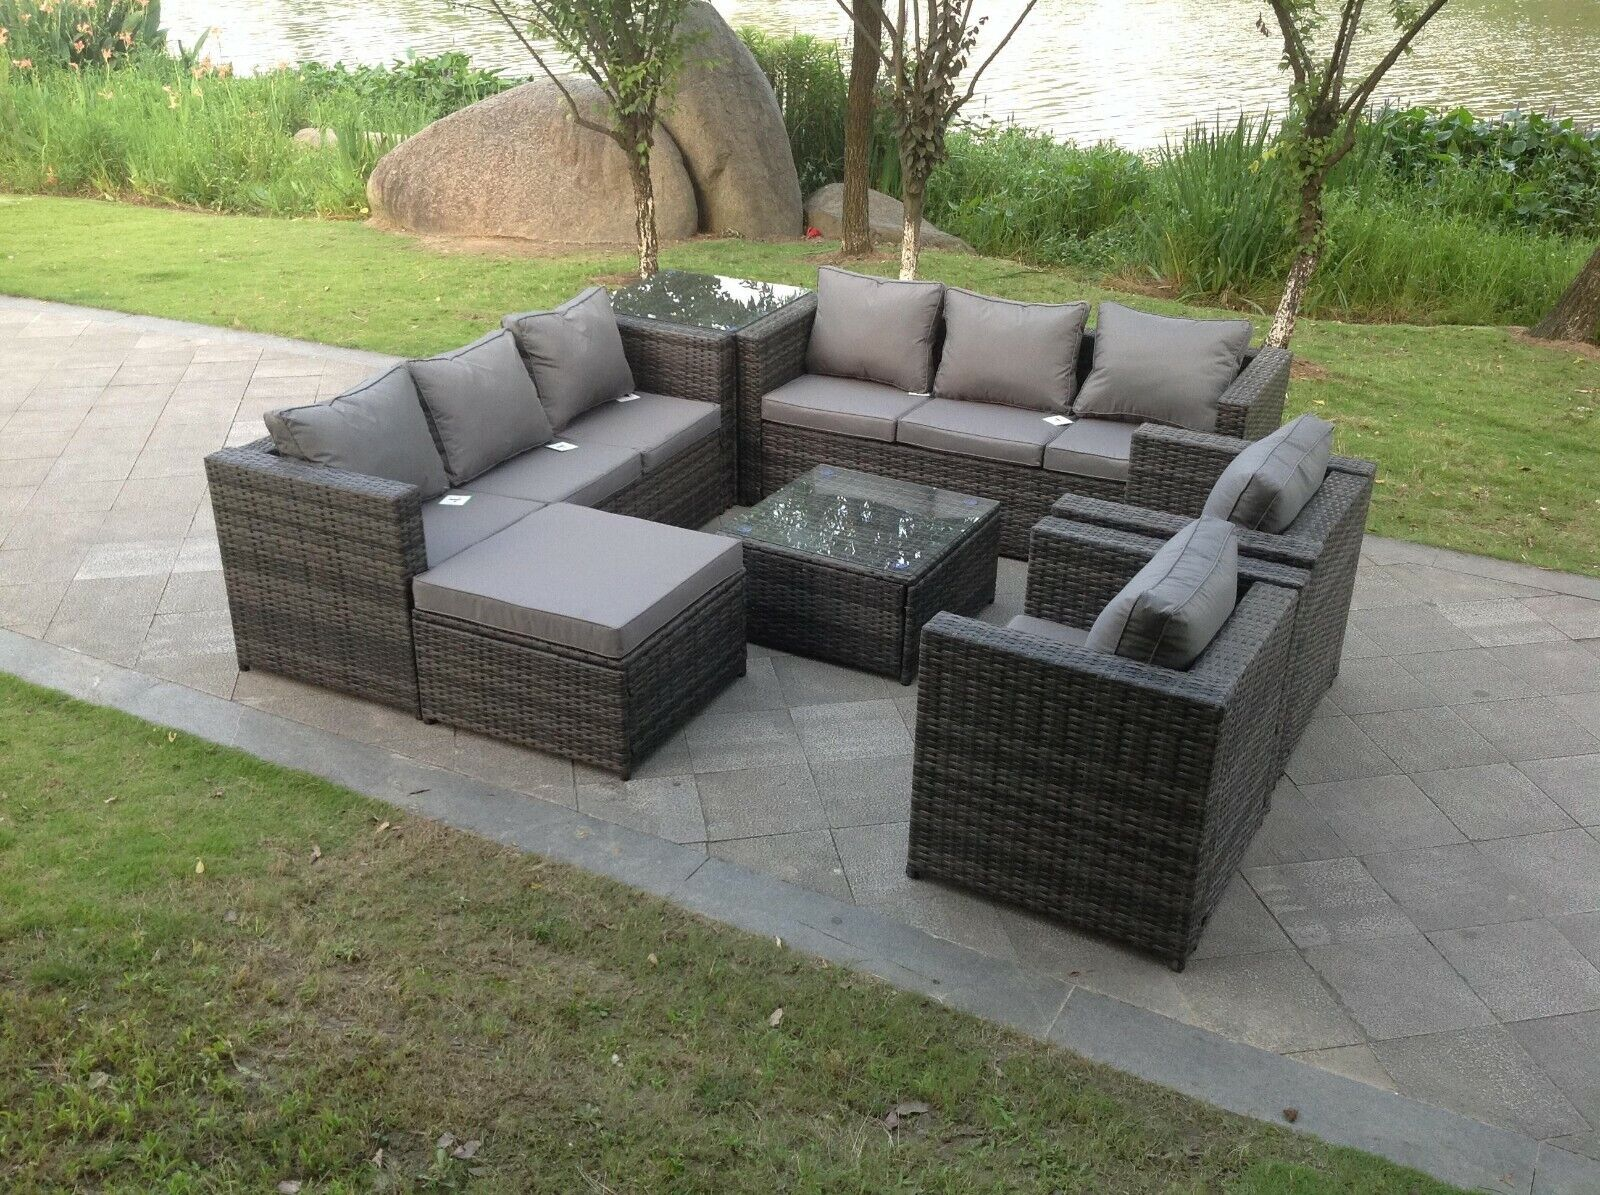 Garden Furniture - 9 Seater Rattan Sofa Set Chair Coffee Table Footstool Outdoor Garden Furniture